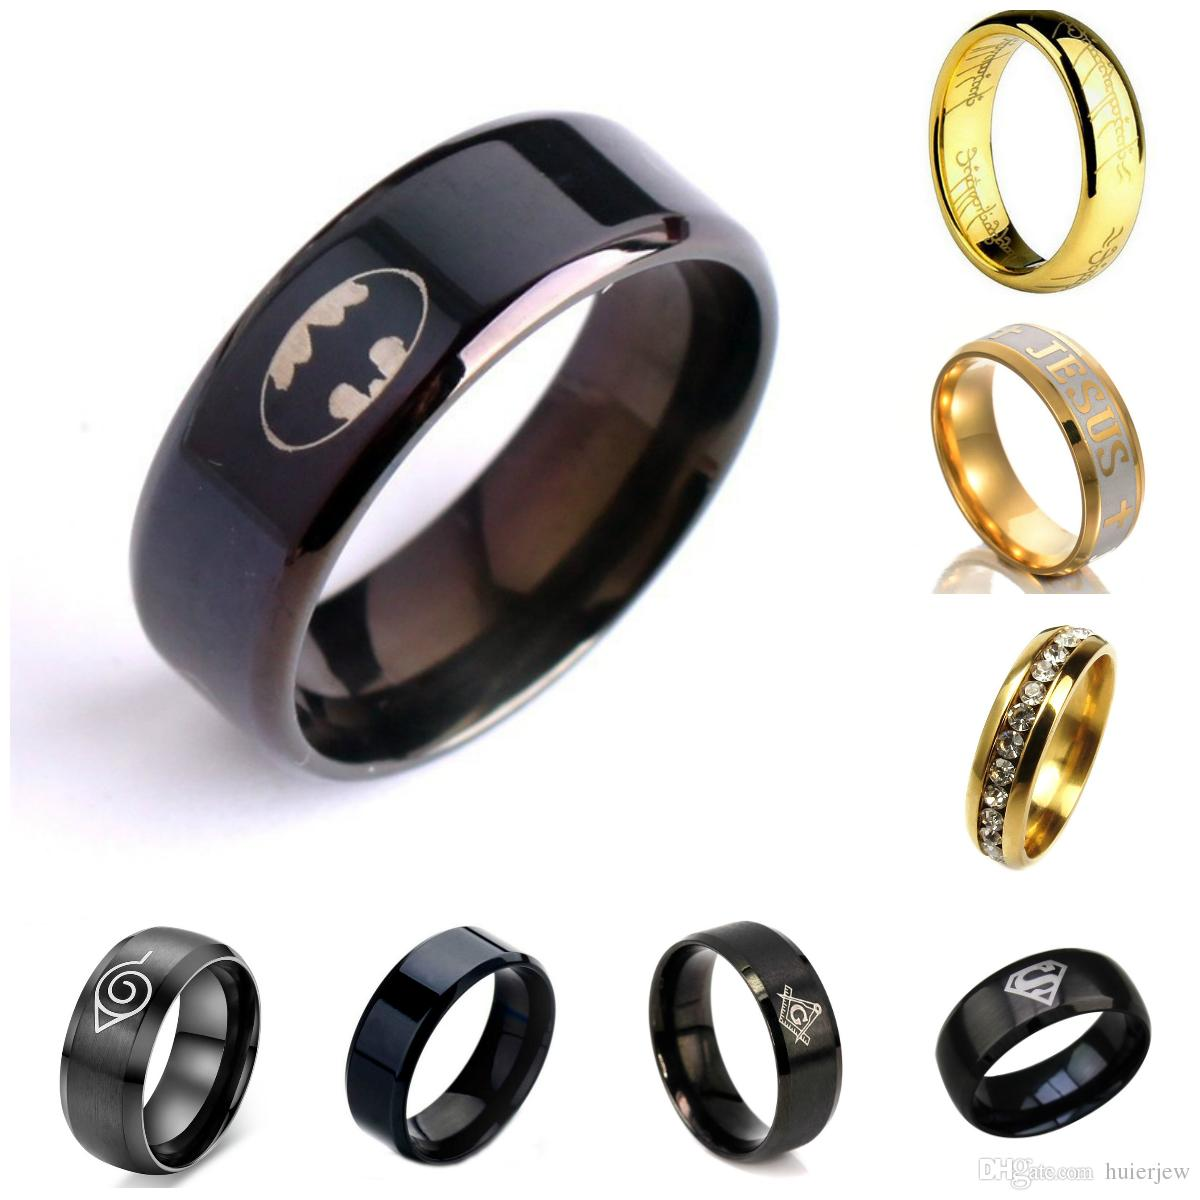 crystal rings product wedding lines engagement row stainless image oxibee jewelry clear products steel ring